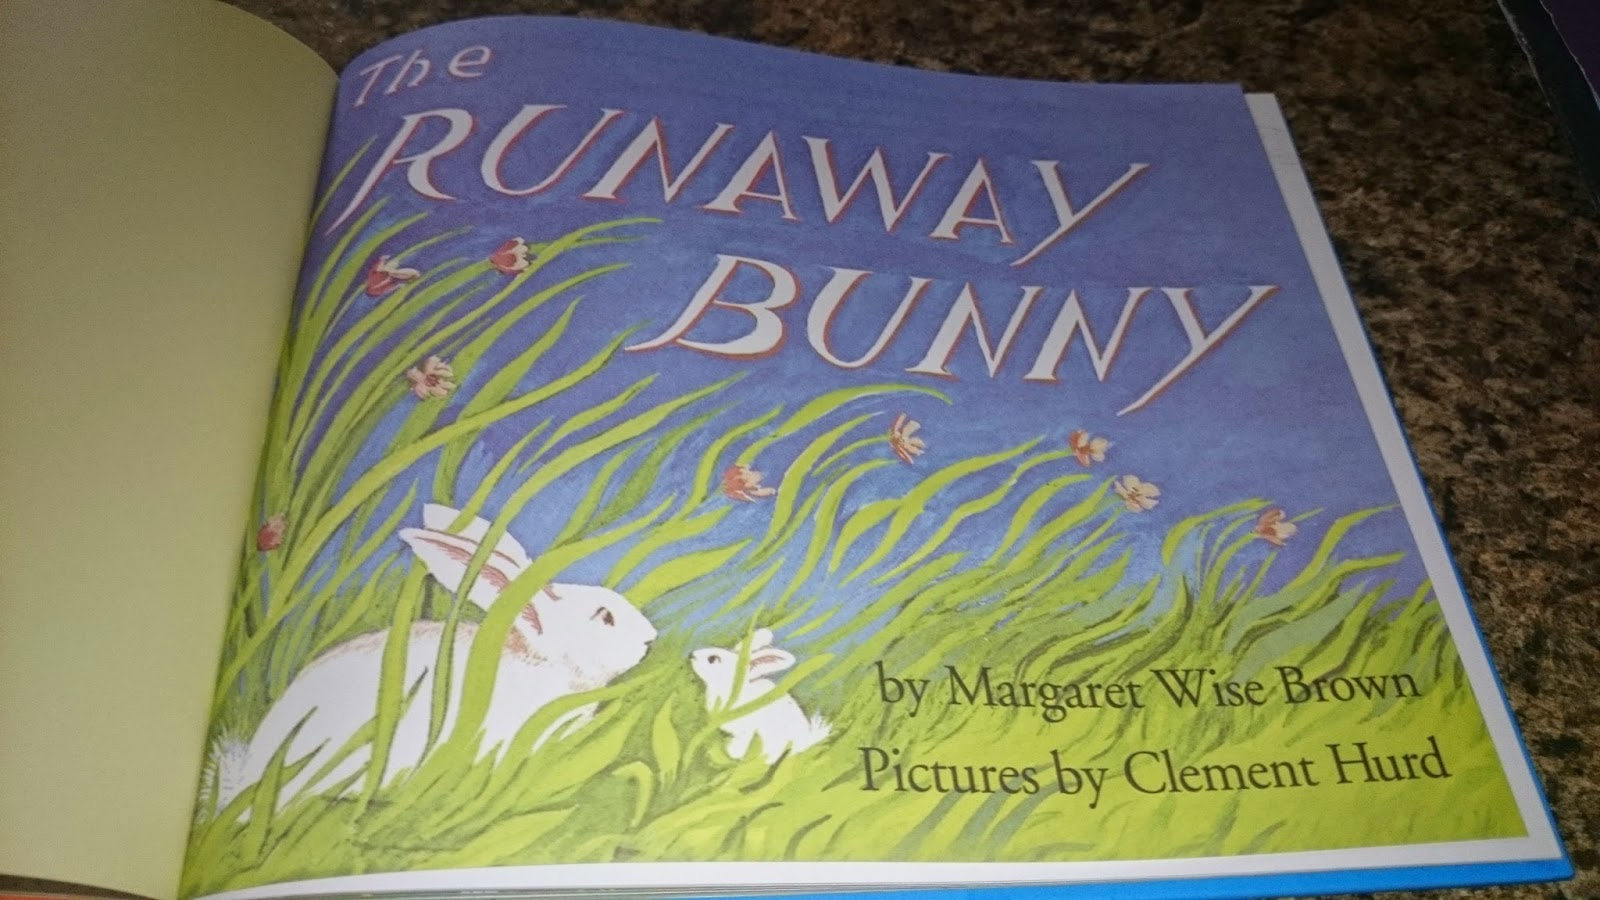 Week #3: Creation and The Runaway Bunny